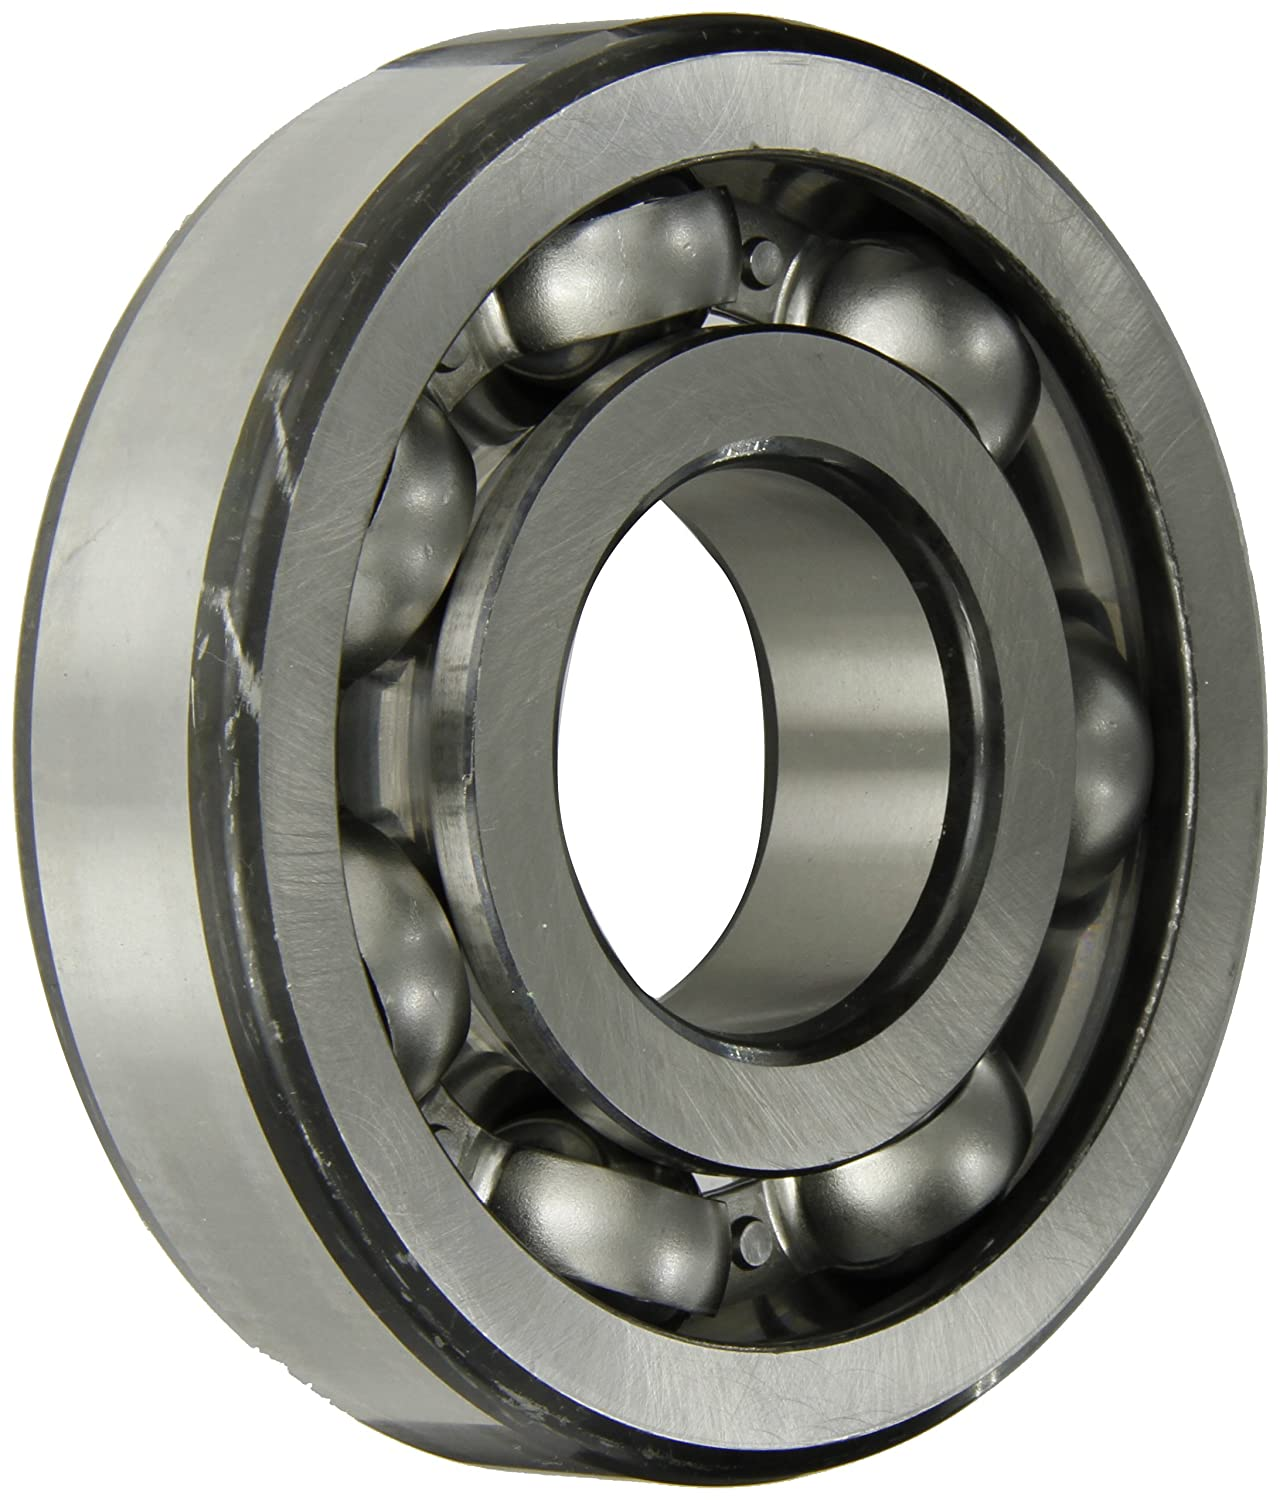 50mm Bore Normal Clearance 31mm Width SKF 6410 Heavy Series Deep Groove Ball Bearing Open ABEC 1 Precision 196000lbf Dynamic Load Capacity 11700lbf Static Load Capacity 130mm OD Deep Groove Design Steel Cage